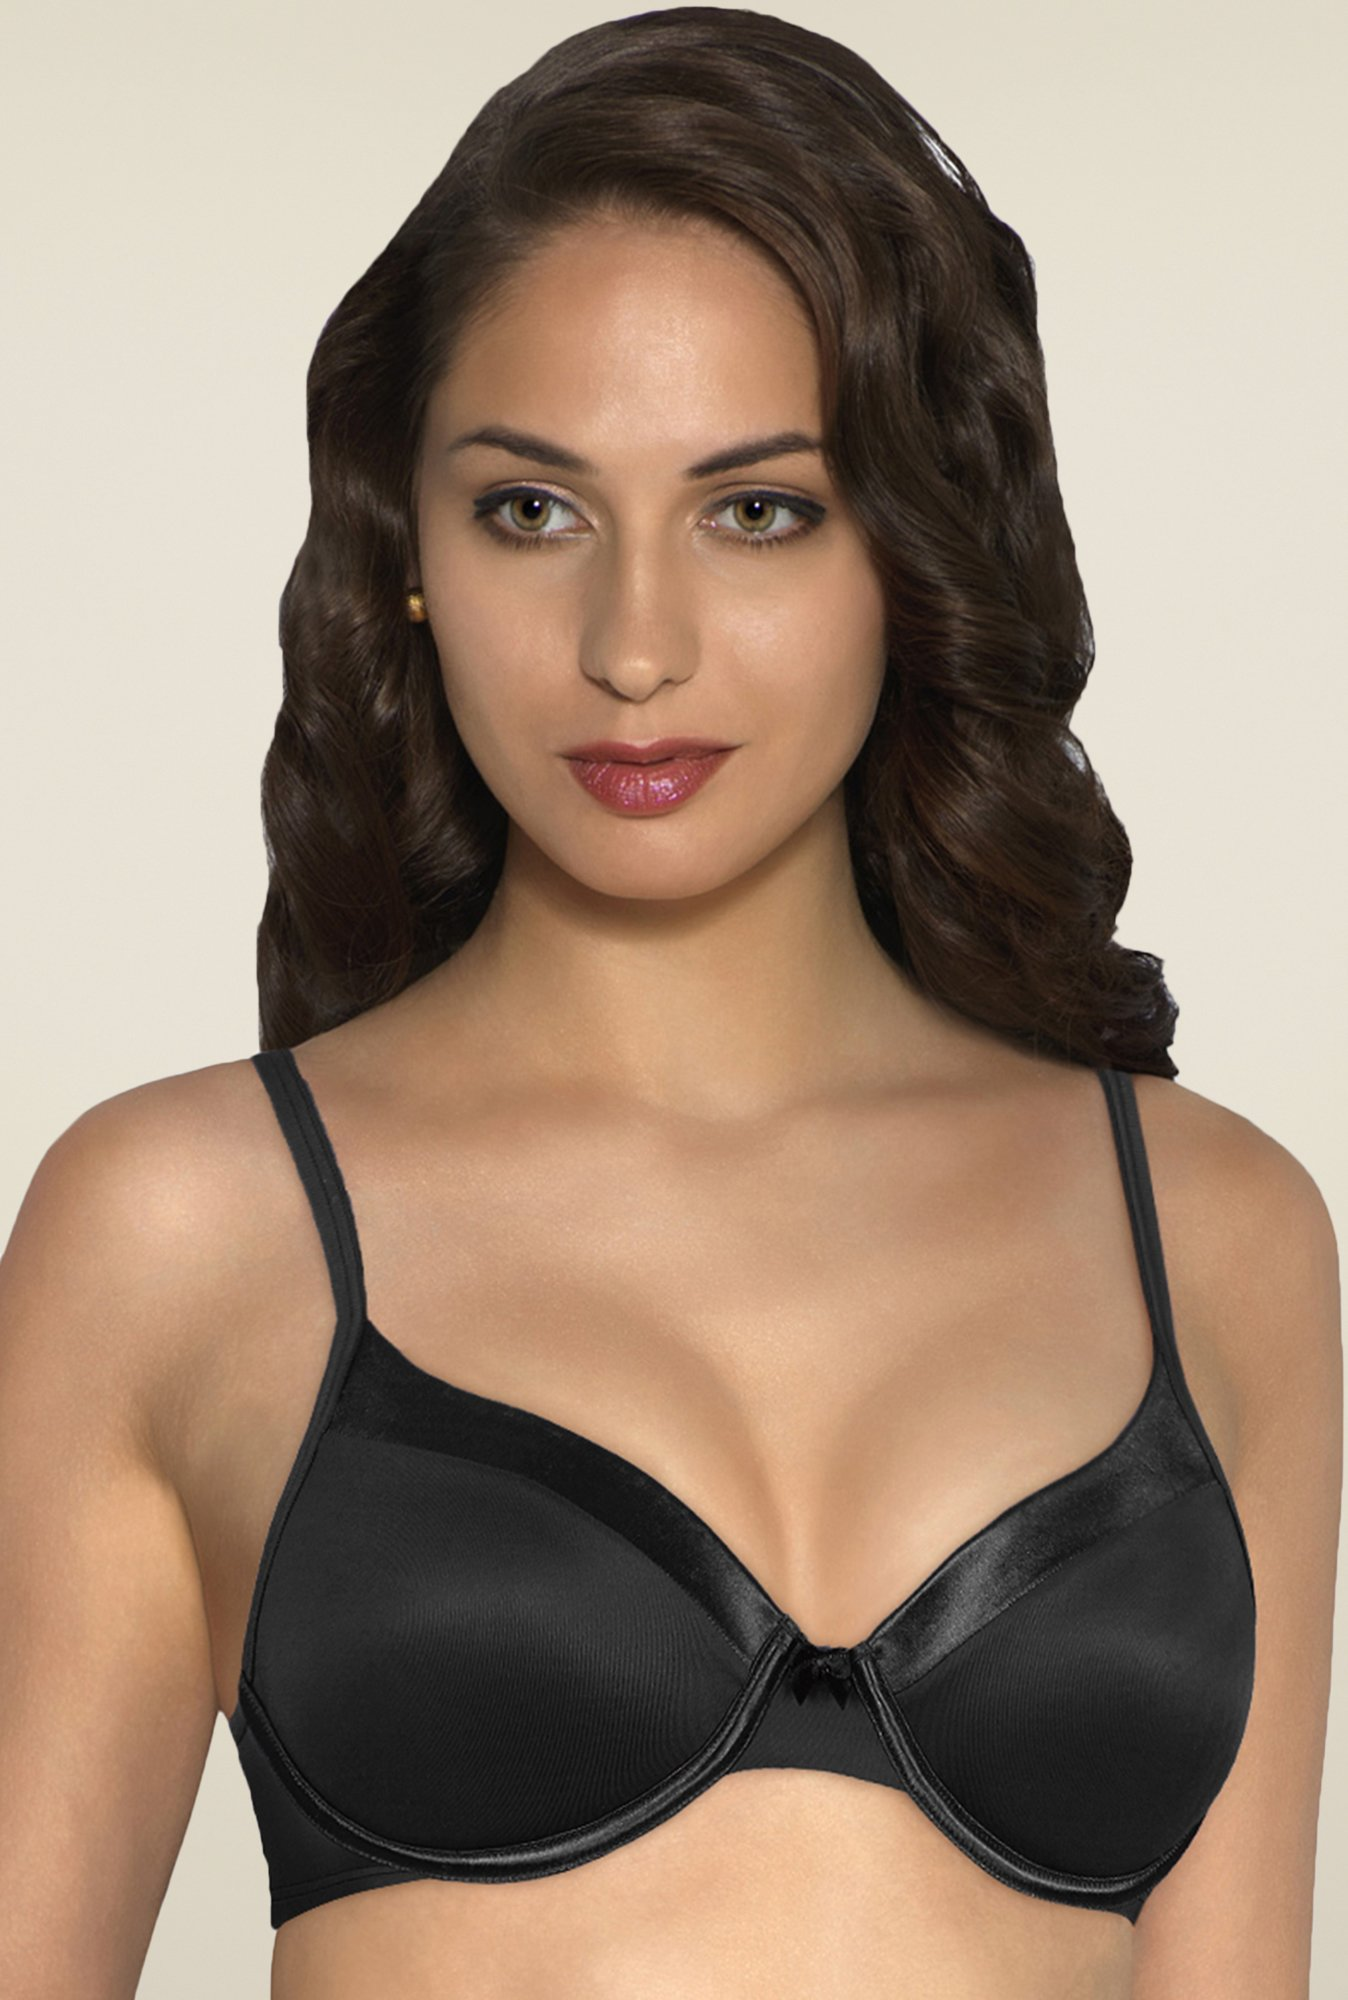 Amante Black Satin Edge Padded Bra